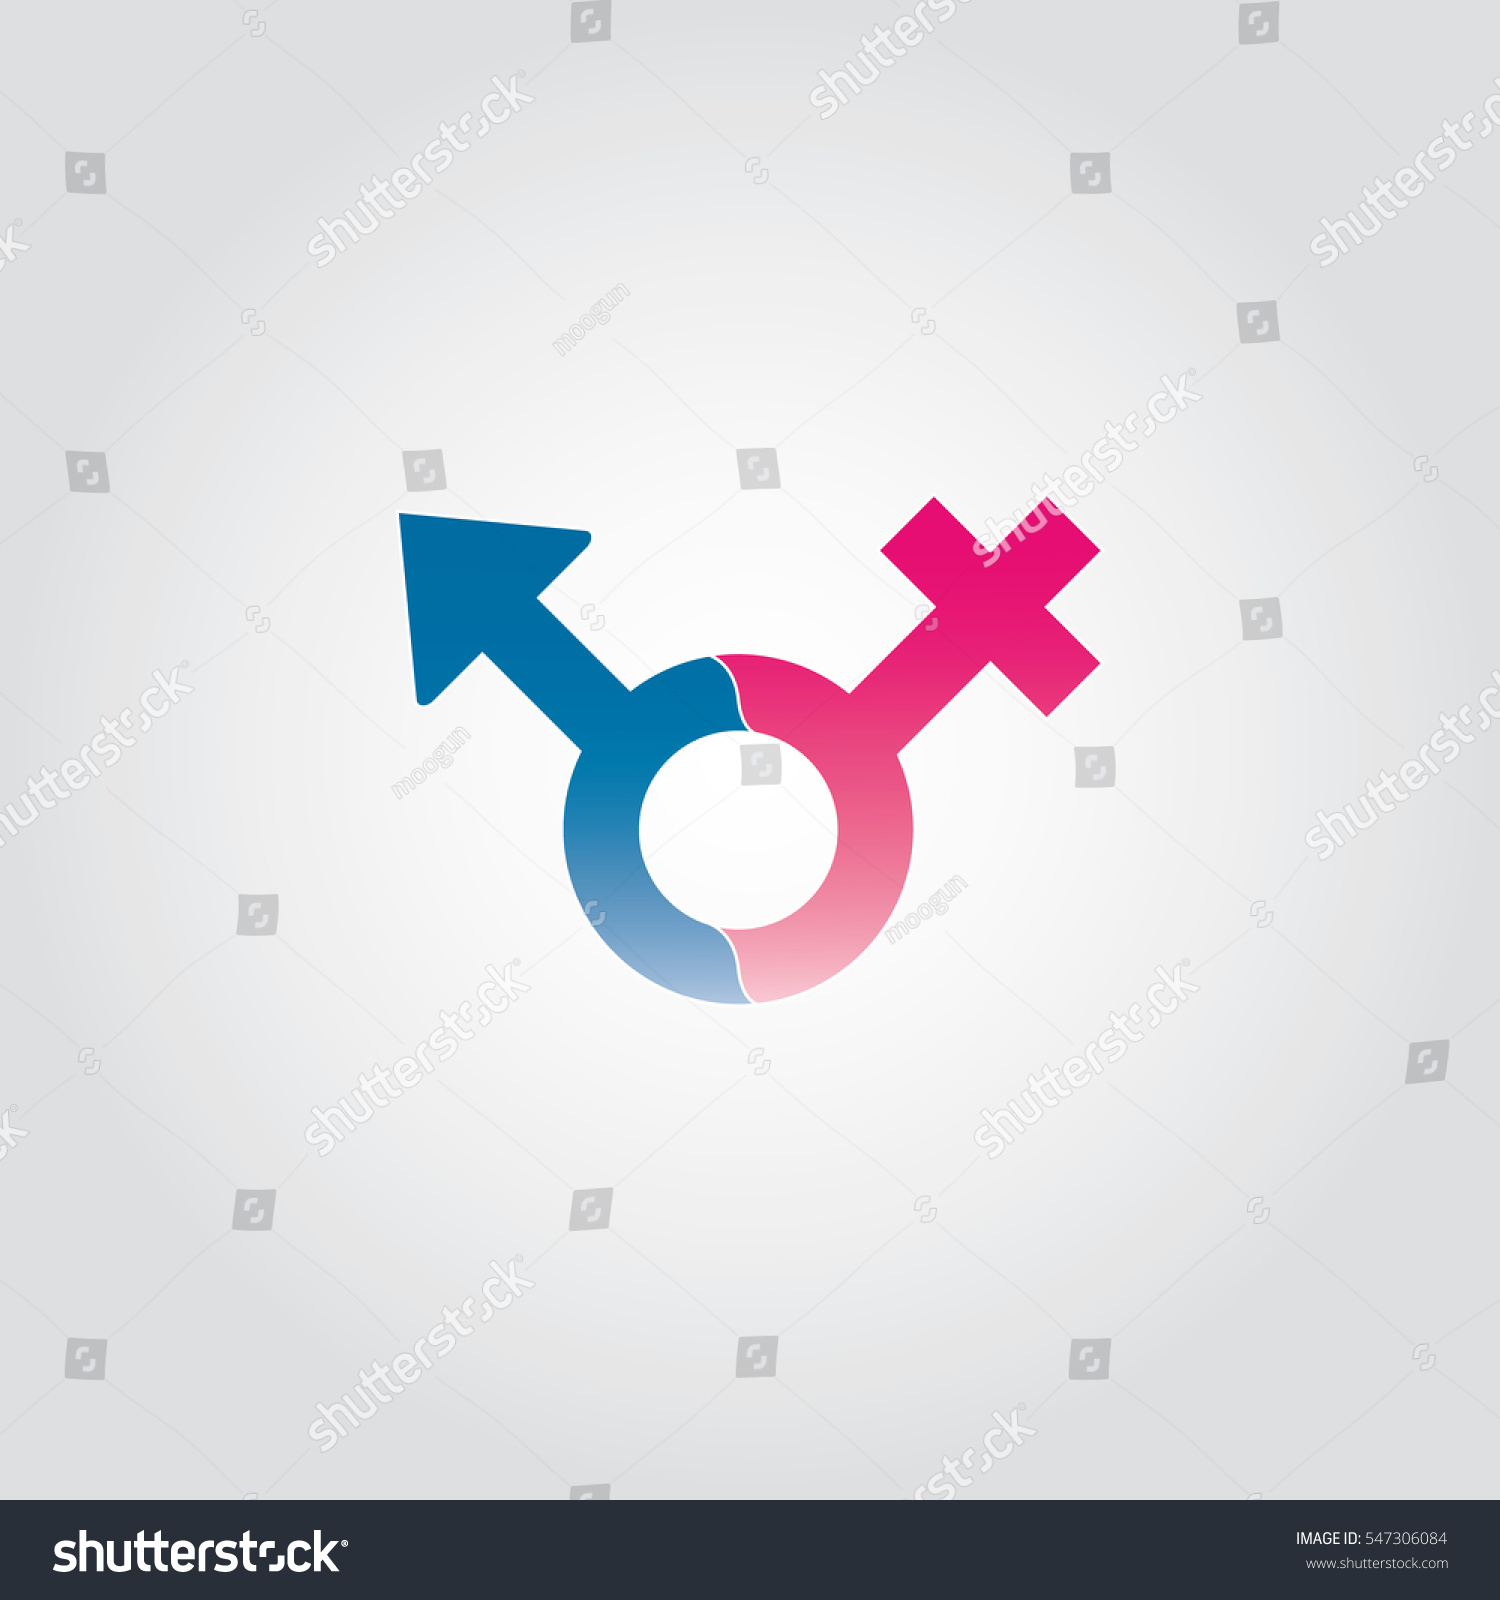 Female Male Symbol Combination Stock Vector Royalty Free 547306084